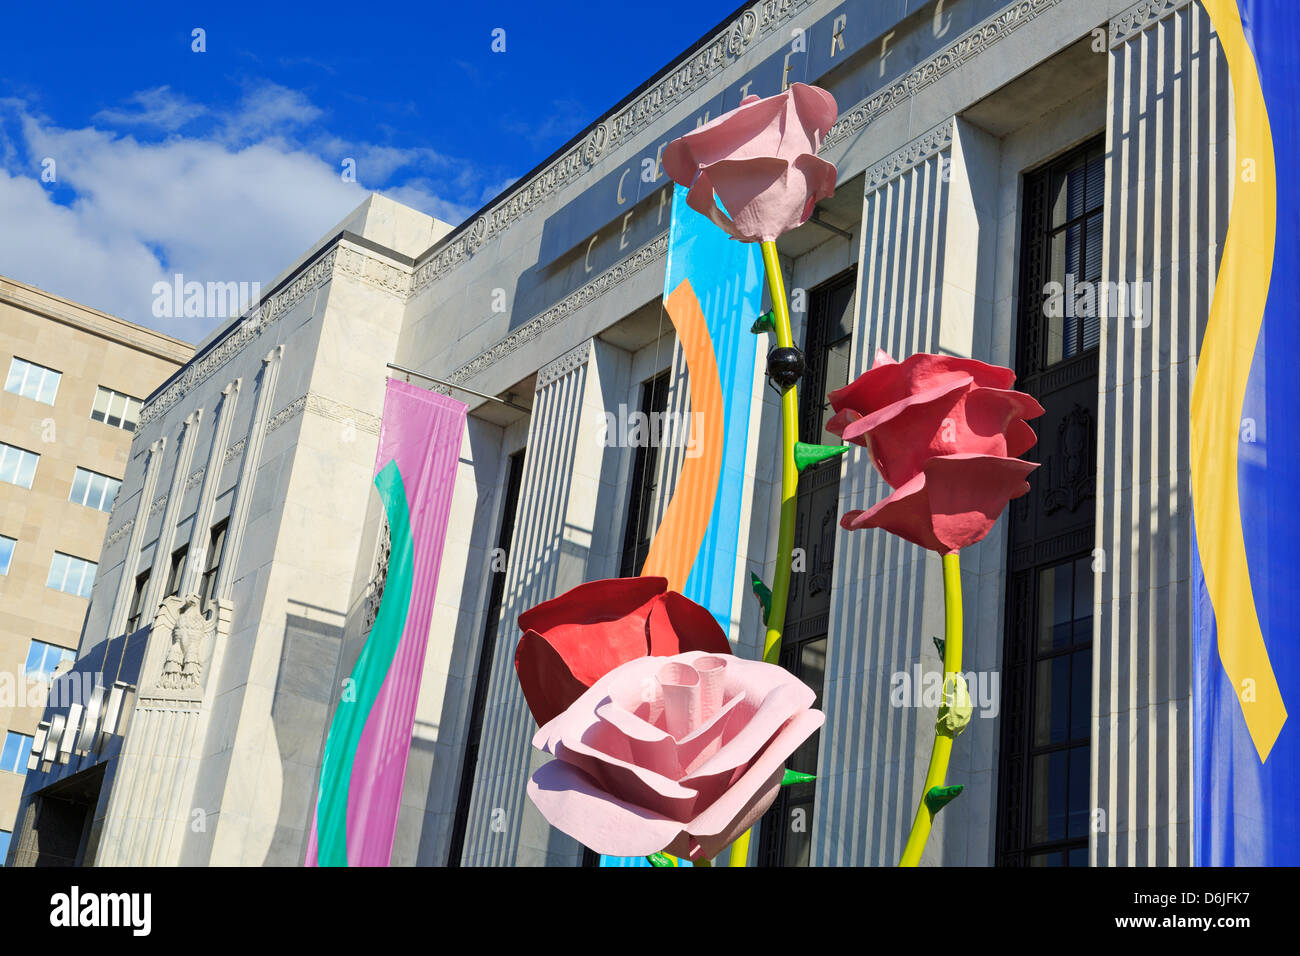 Frist Center For The Visual Arts, Nashville, Tennessee, United States of America, North America - Stock Image